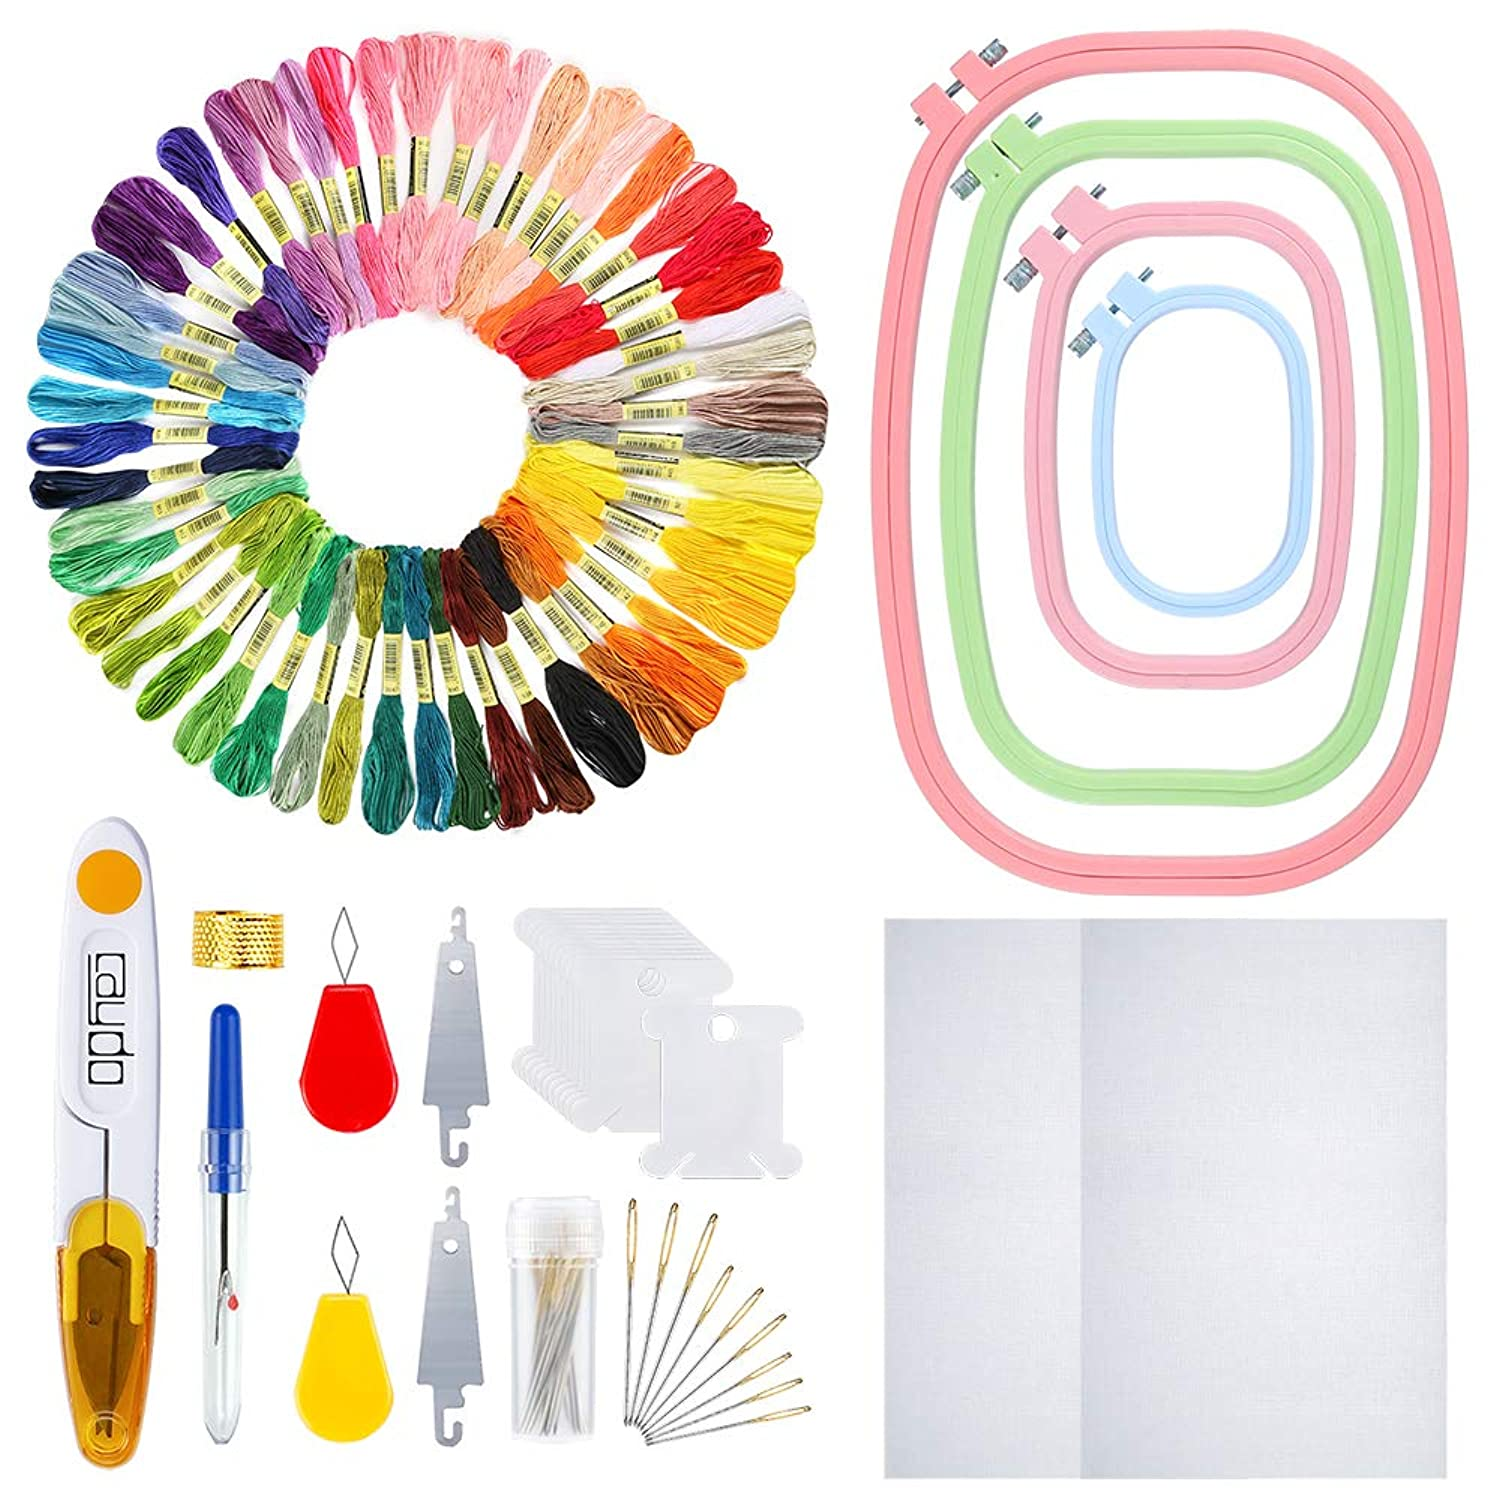 Caydo Full Range of Embroidery Starter Kit Including 4 Pieces ABS Plastic Square Embroidery Hoops, 50 Color Threads, 2 Pieces 12 by 18-Inch 14 Count Classic Reserve Aida and Cross Stitch Tool Kit